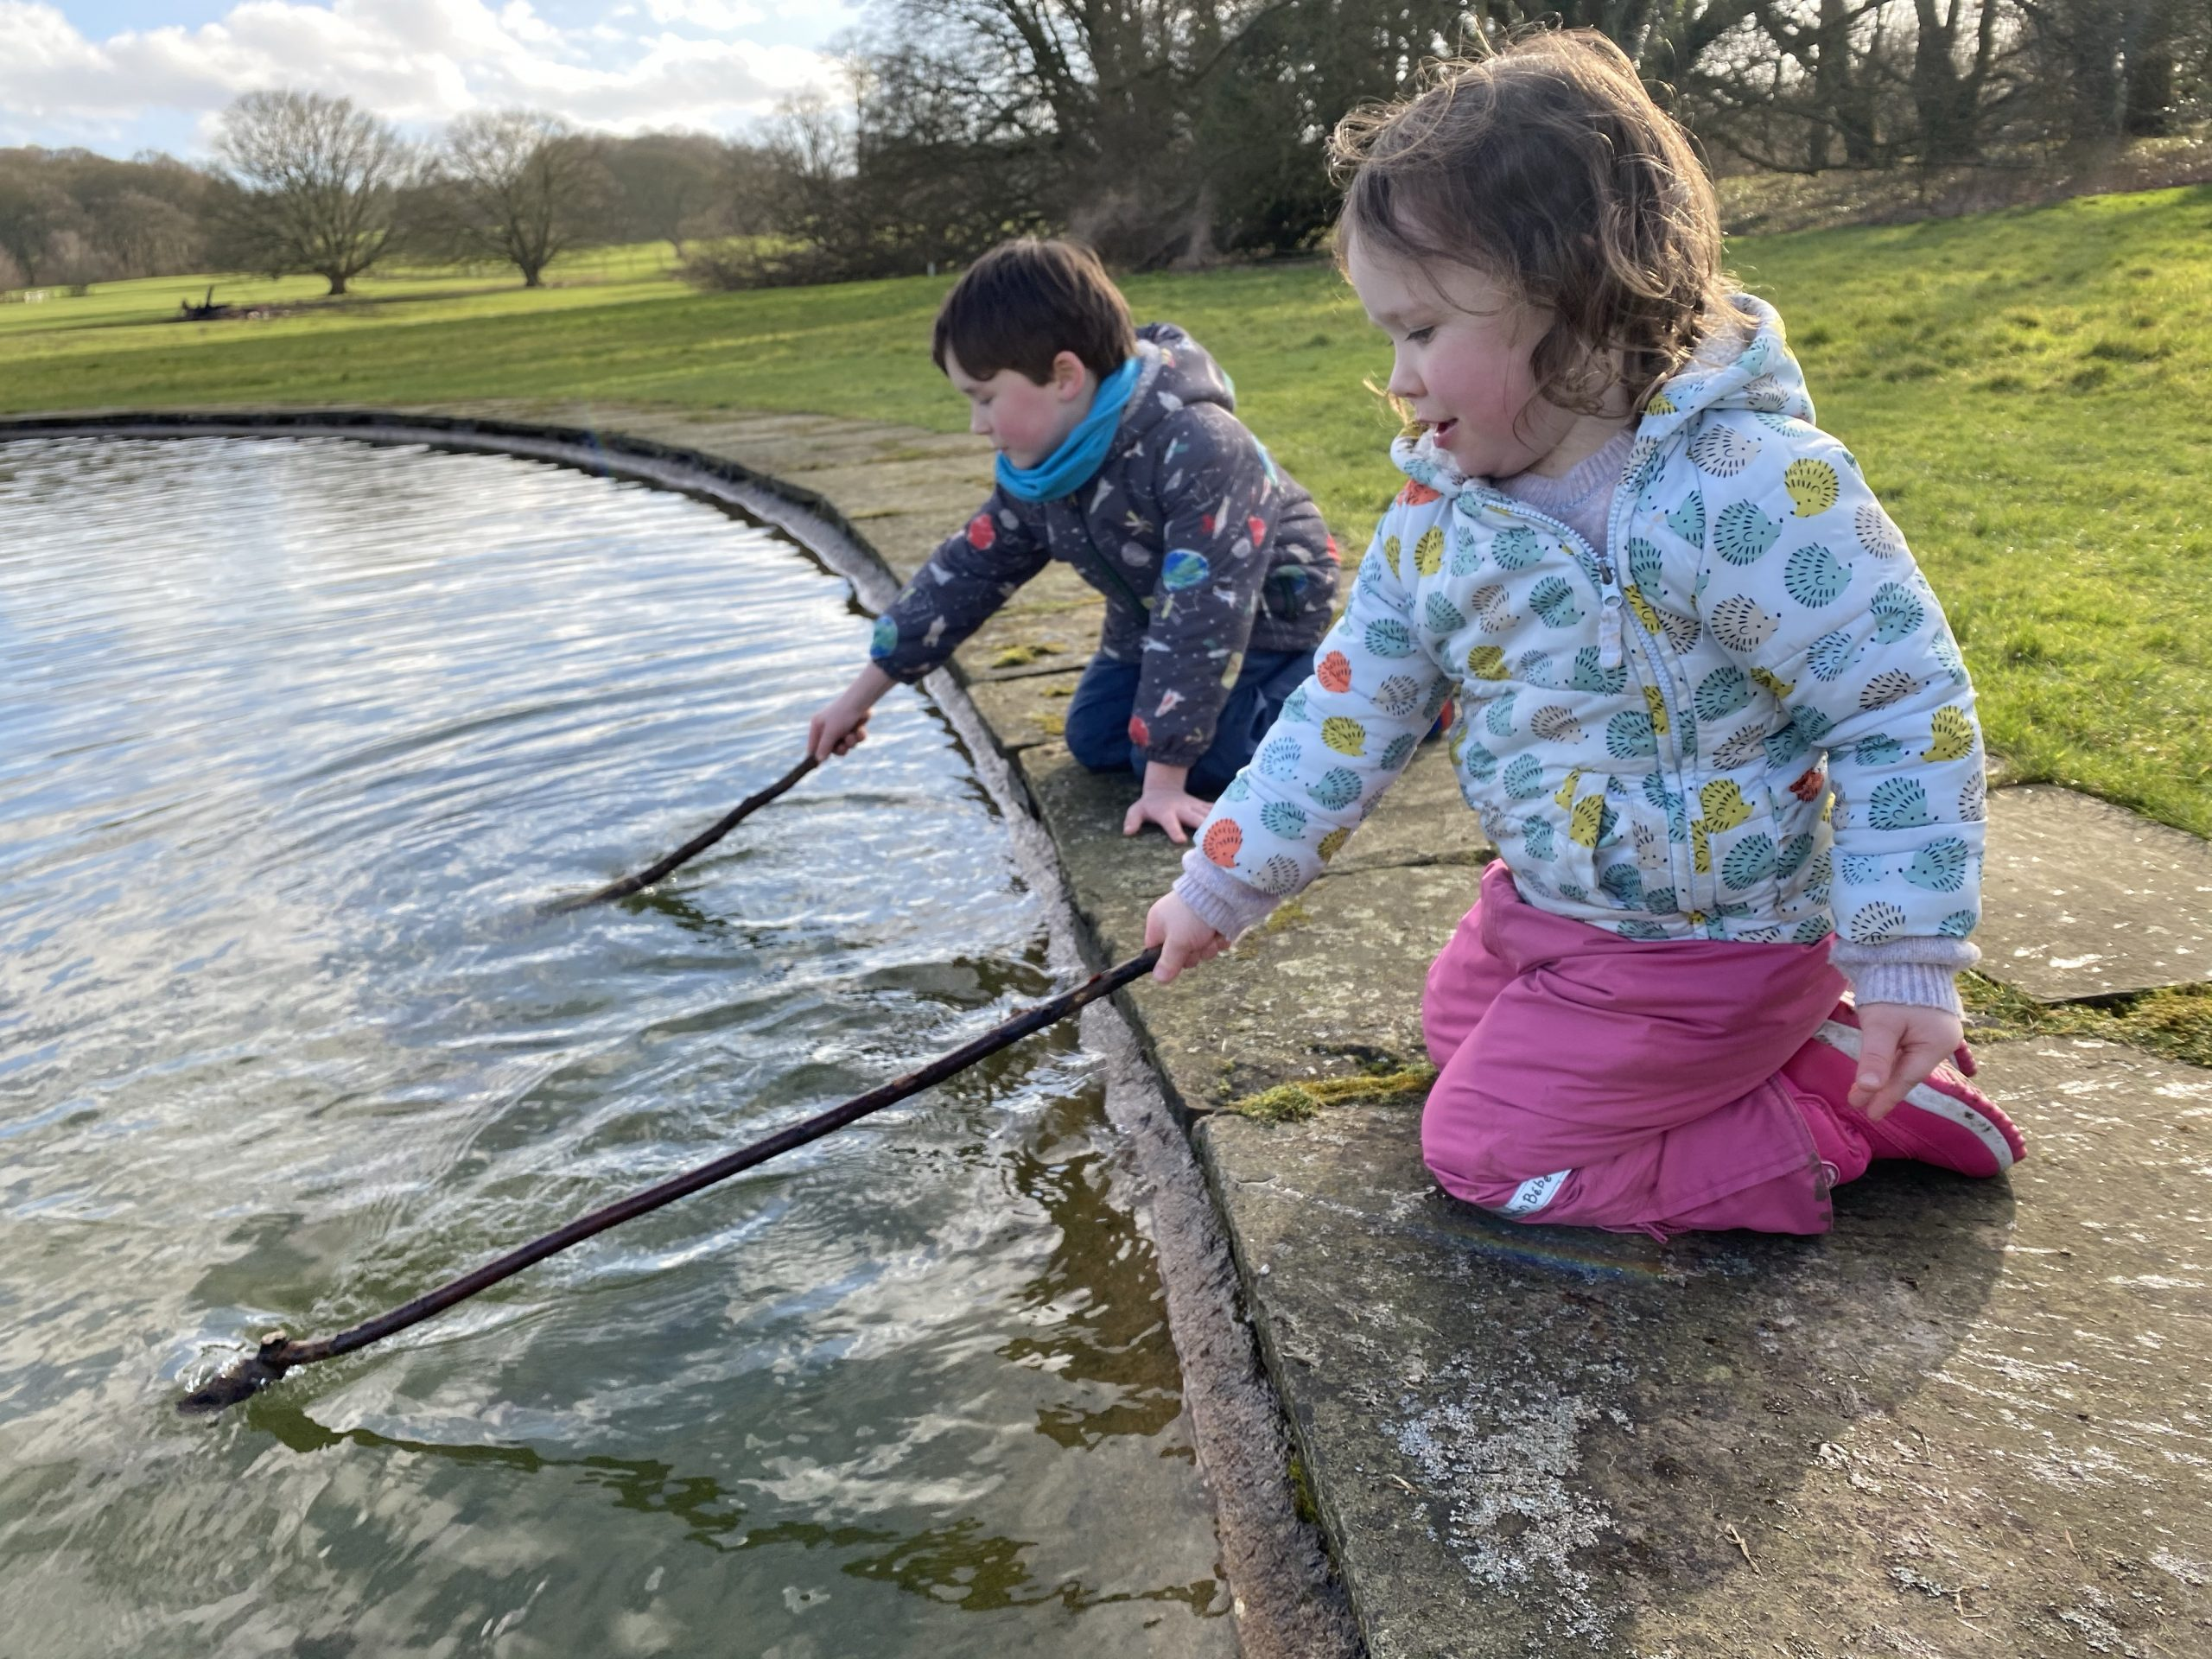 Two small children playing by a pond with sticks